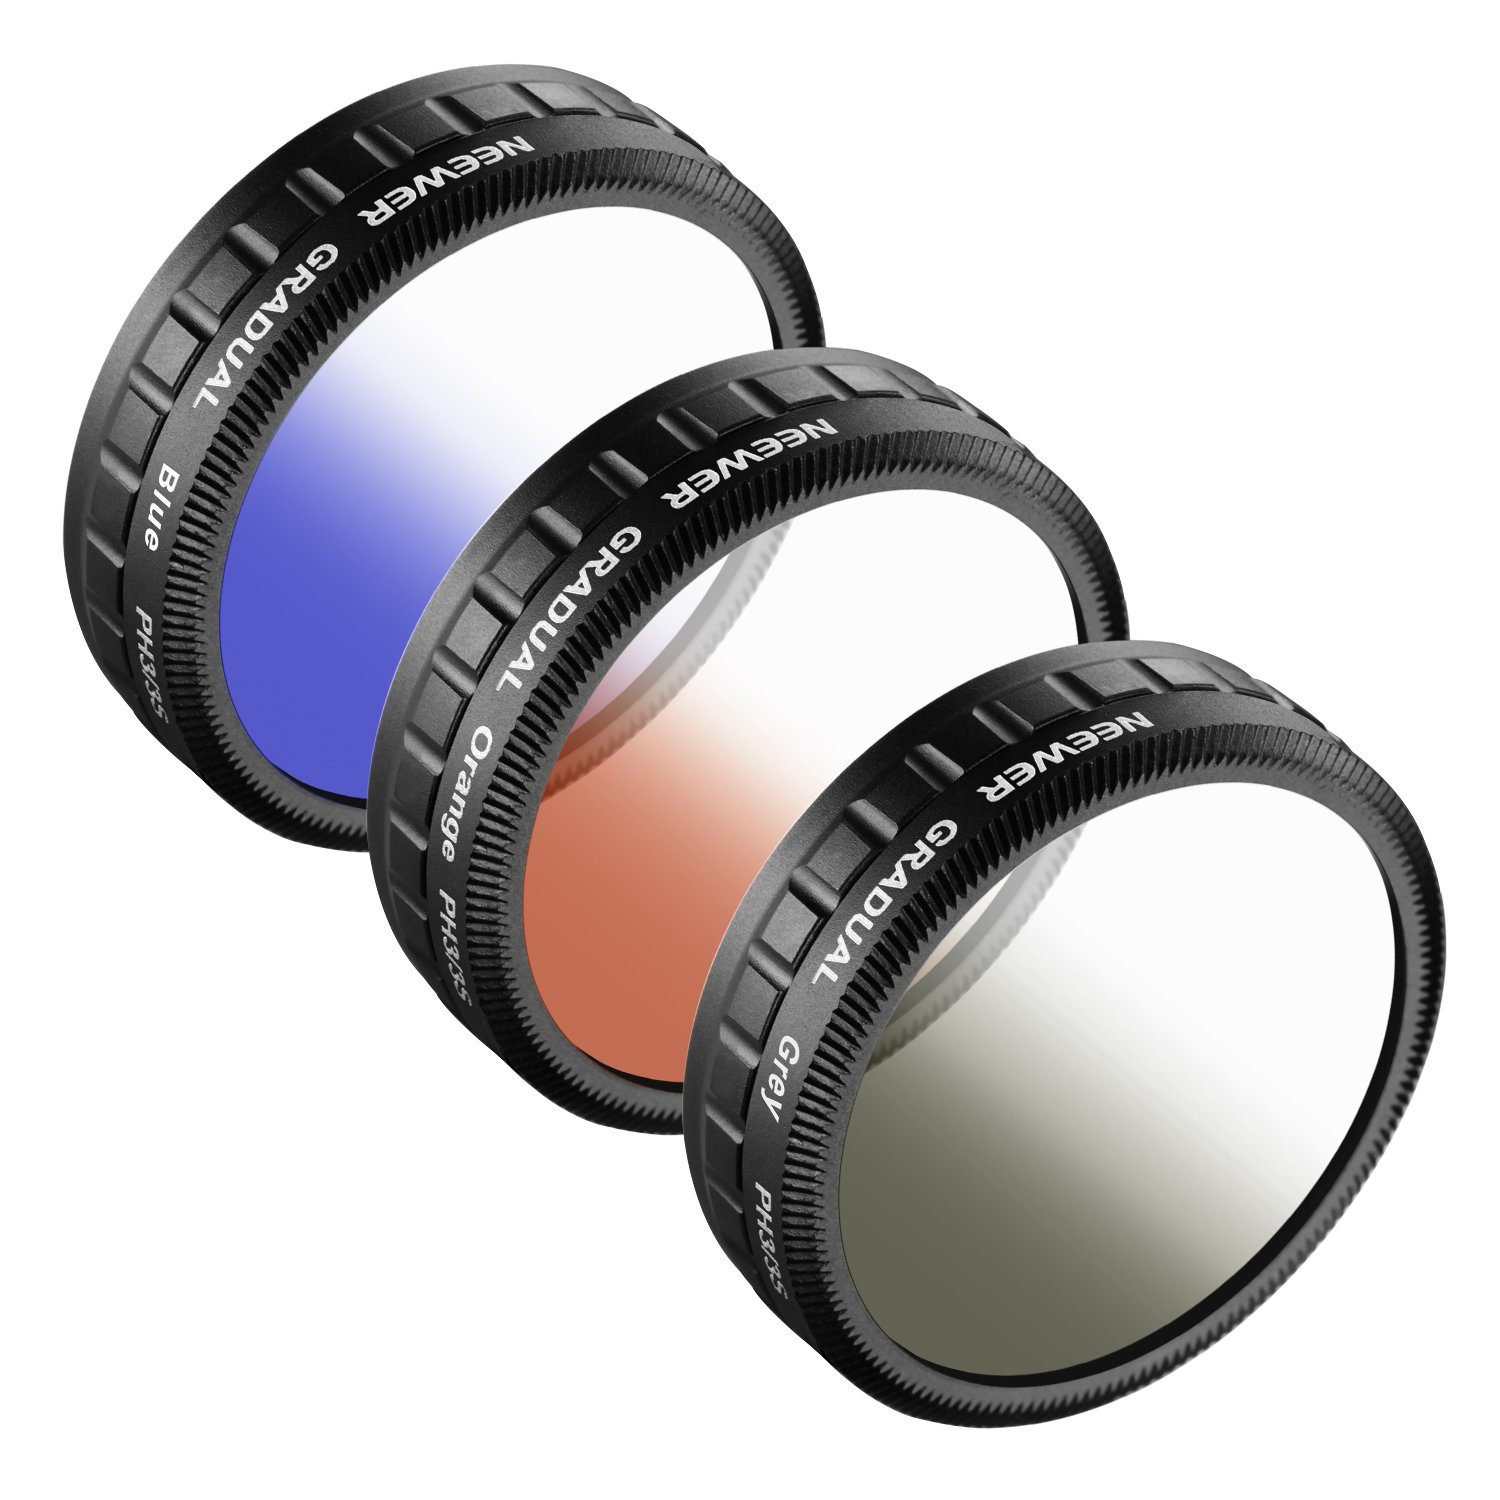 Neewer for DJI Phantom 3 Standard, 3PCS Graduated Color Filter Set: (1)Graduated Grey Filter+(1)Graduated Orange Filter+(1)Graduated Blue Filter, Not for DJI Phantom 3 Professional or Advance